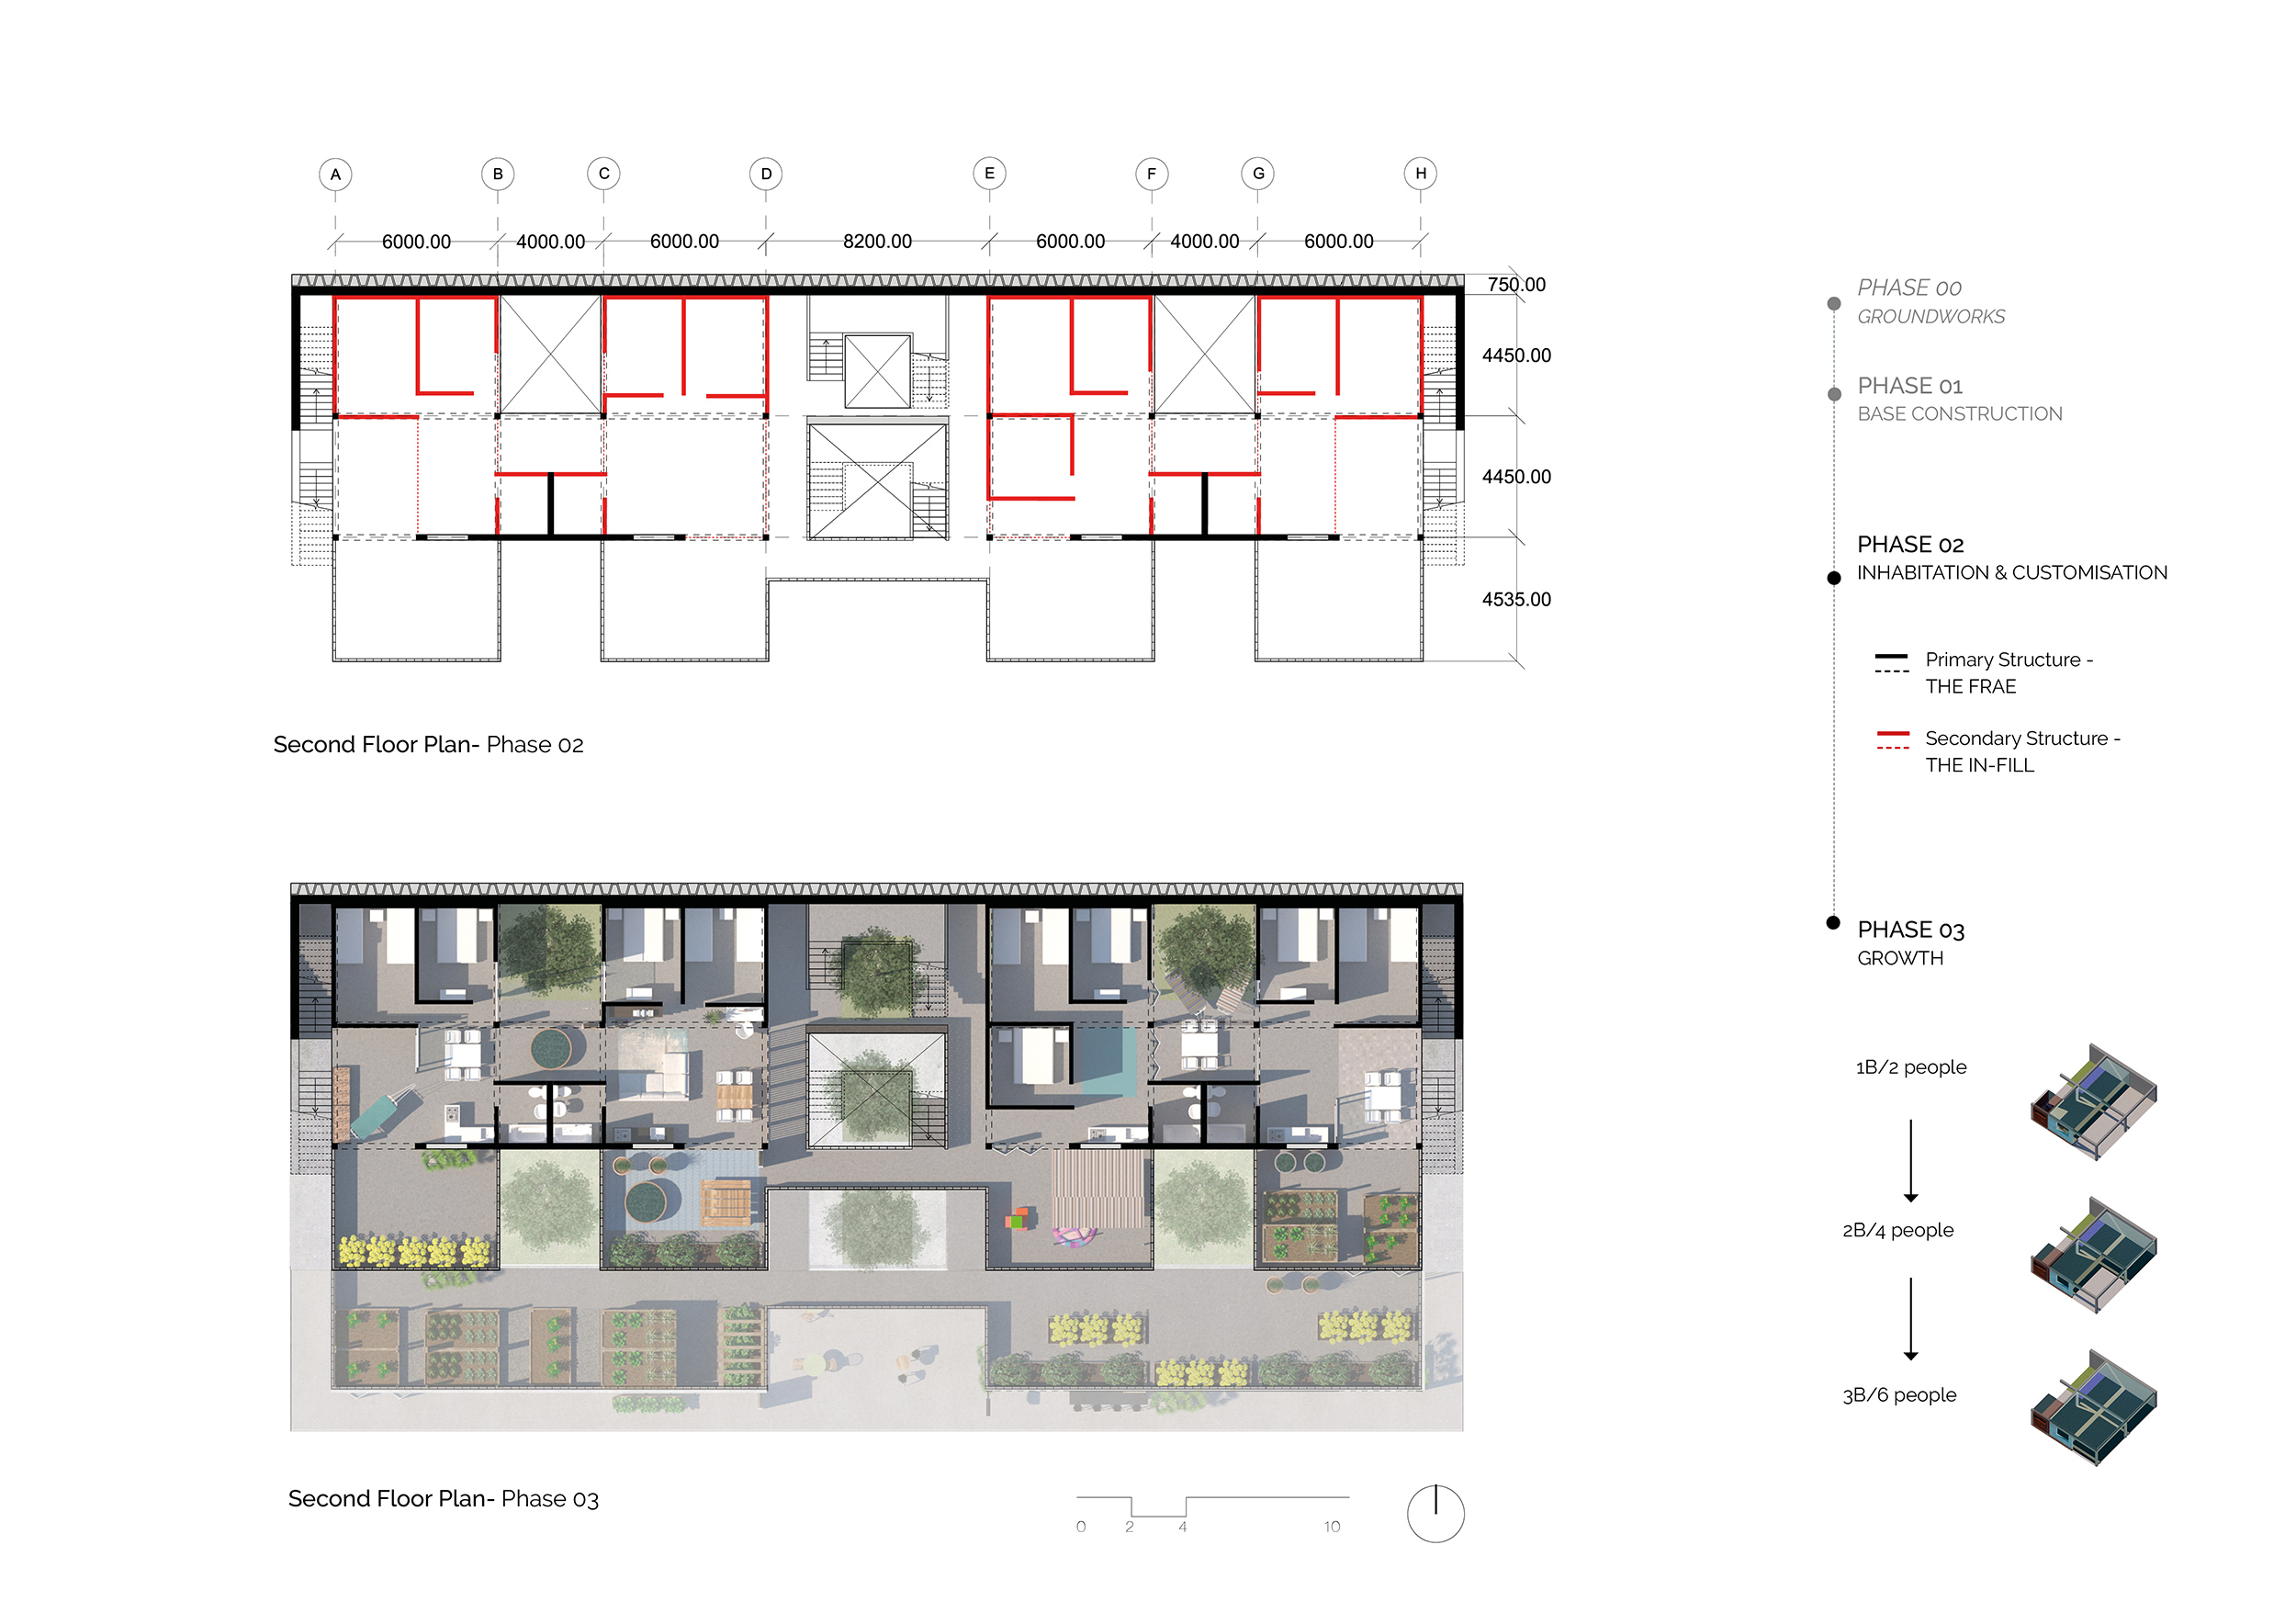 Second floor plan: phases 01, 02 & 03